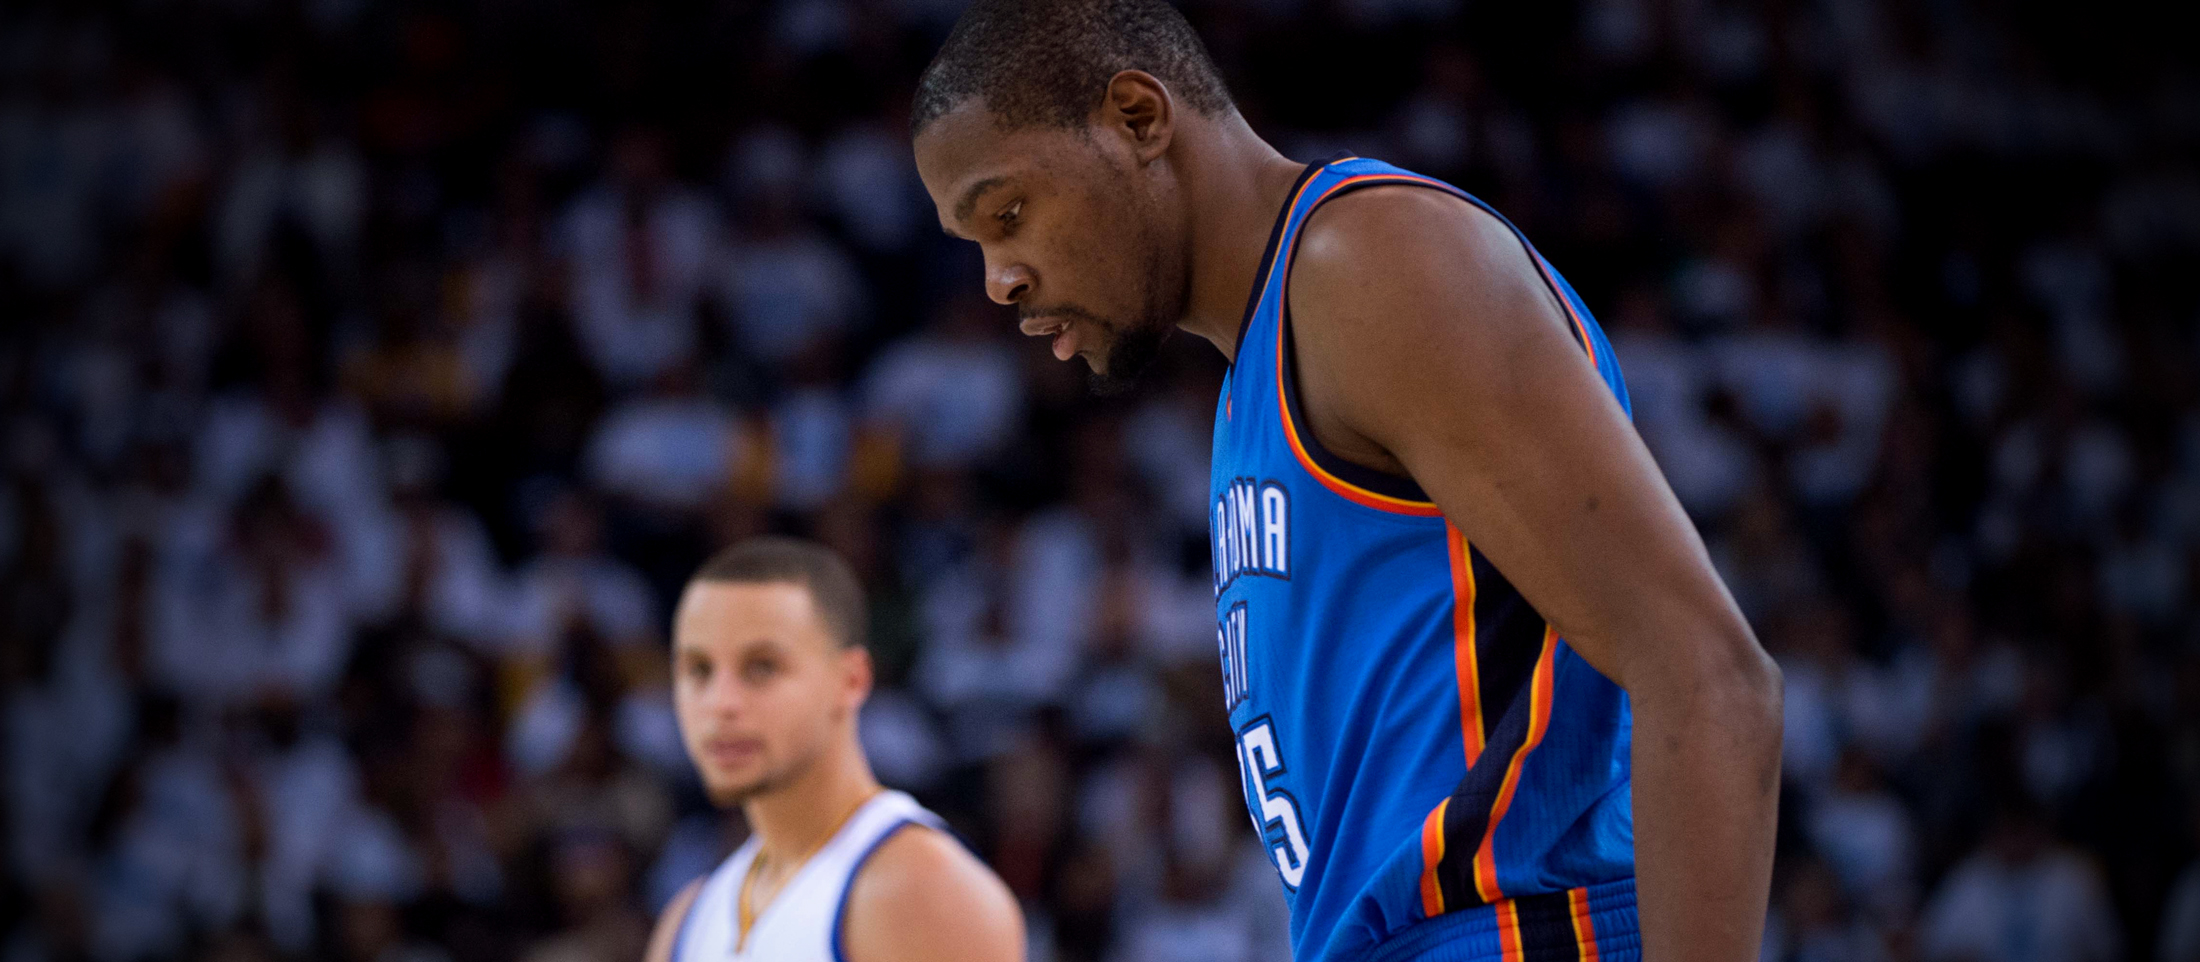 Nike kevin durant vs under armour stephen curry hypebeast